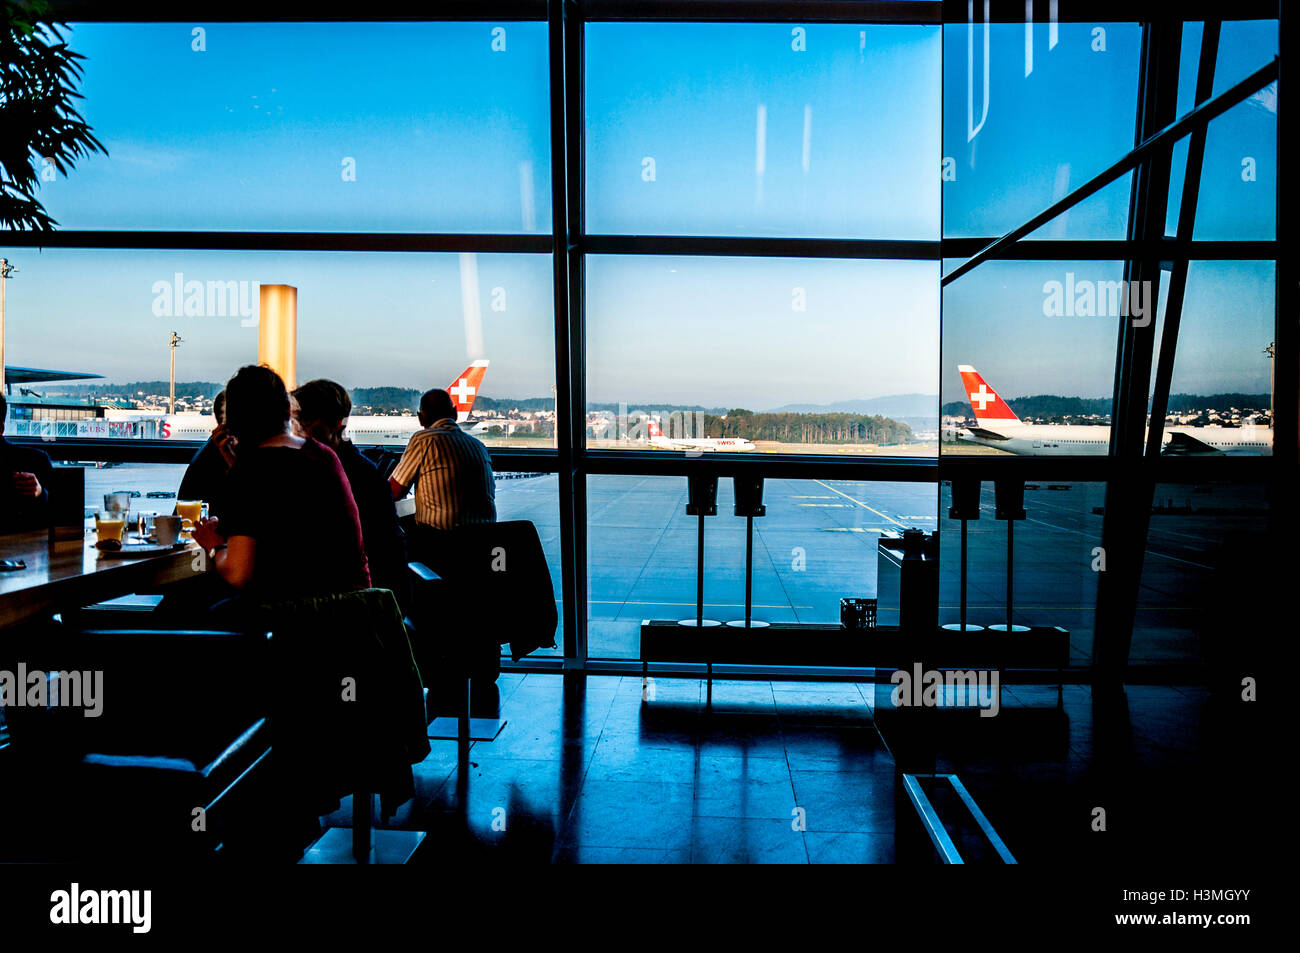 High contrast view of Zurich Airport terminal cafe window, Switzerland - Stock Image